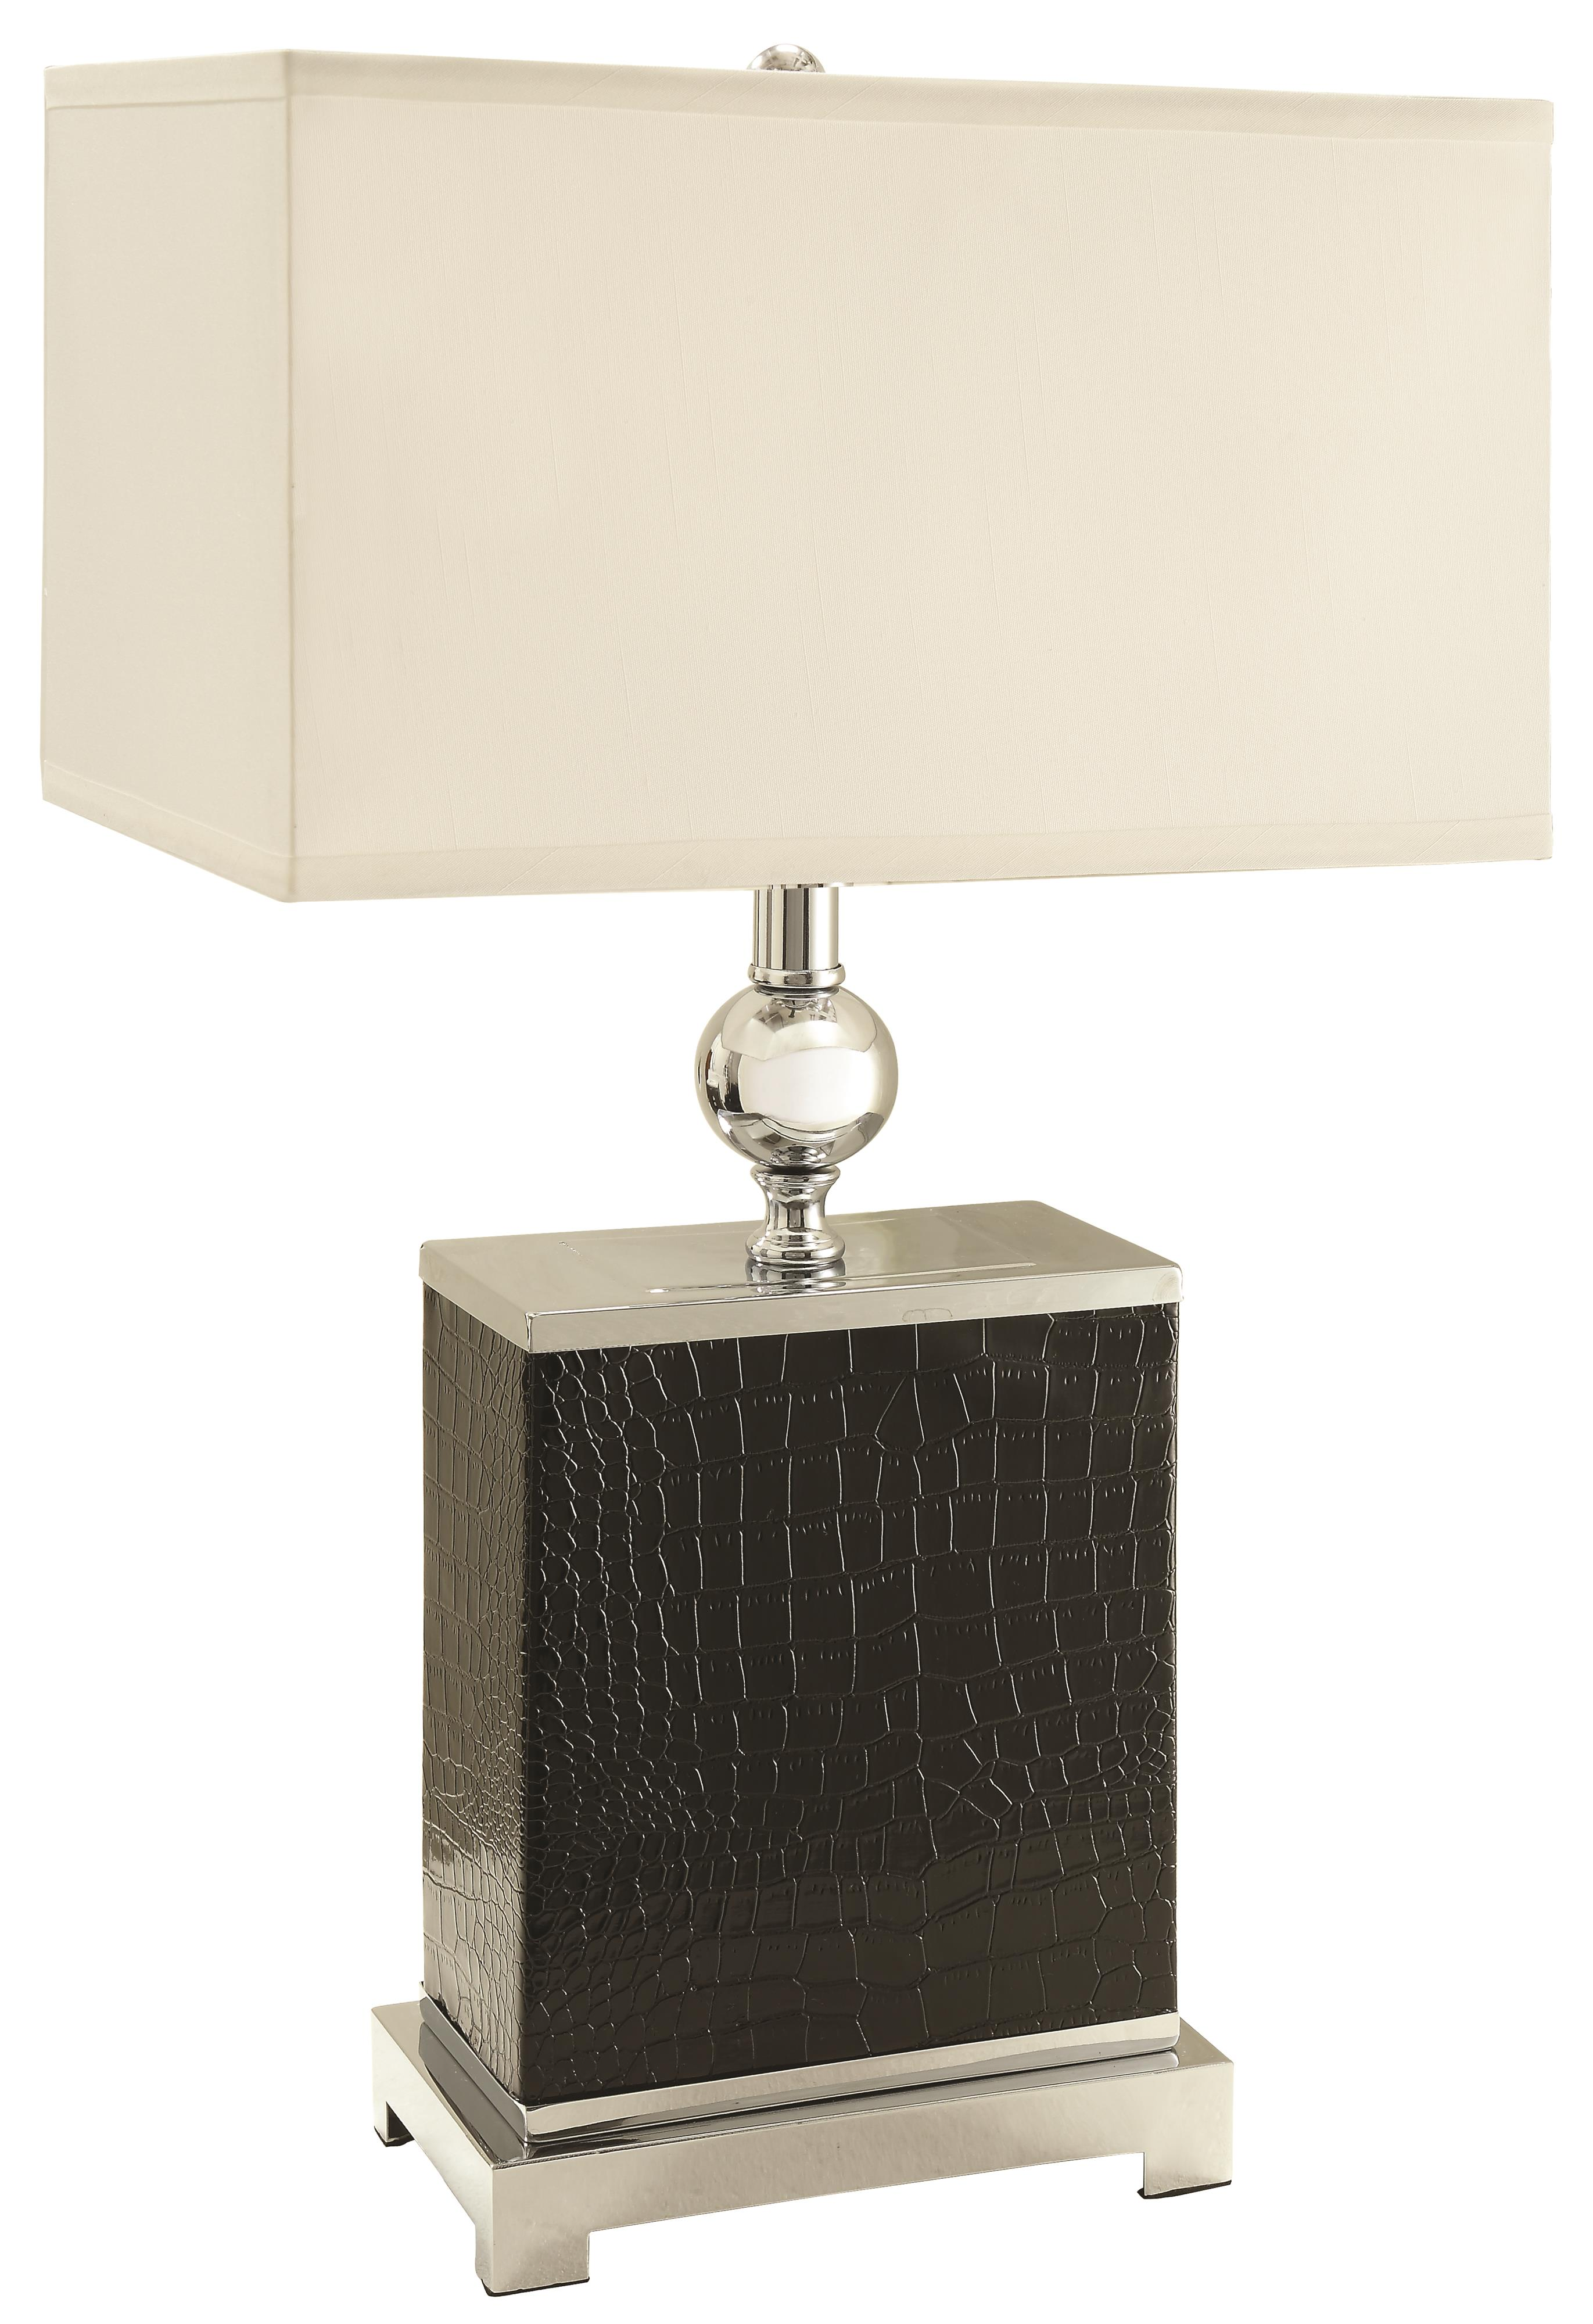 Coaster Table Lamps Lamp - Item Number: 901571